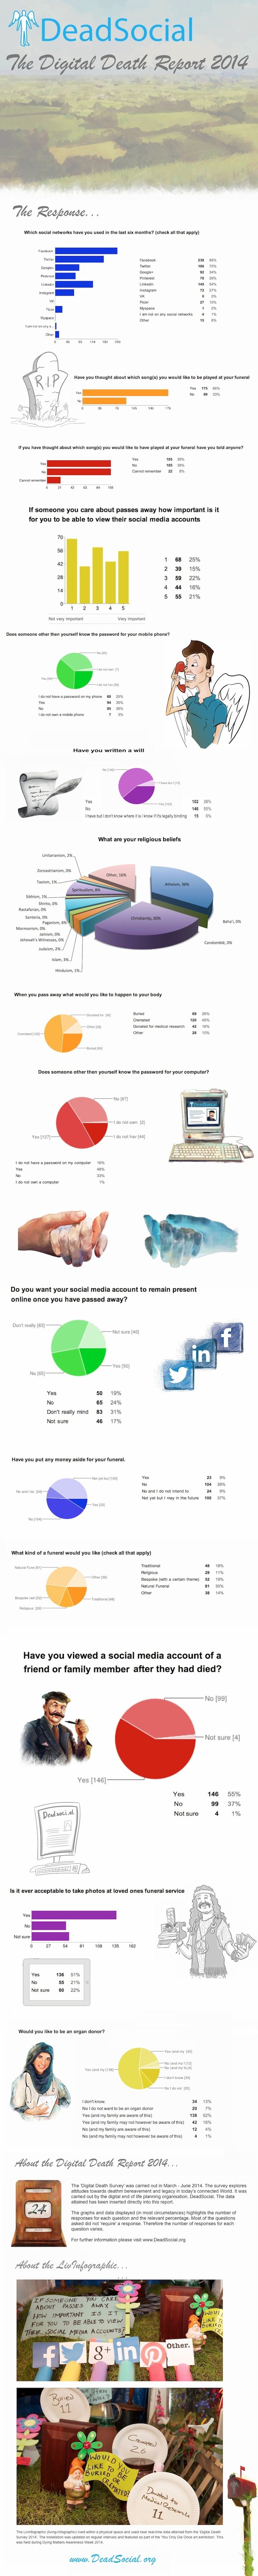 Digital Death Survey Infographic